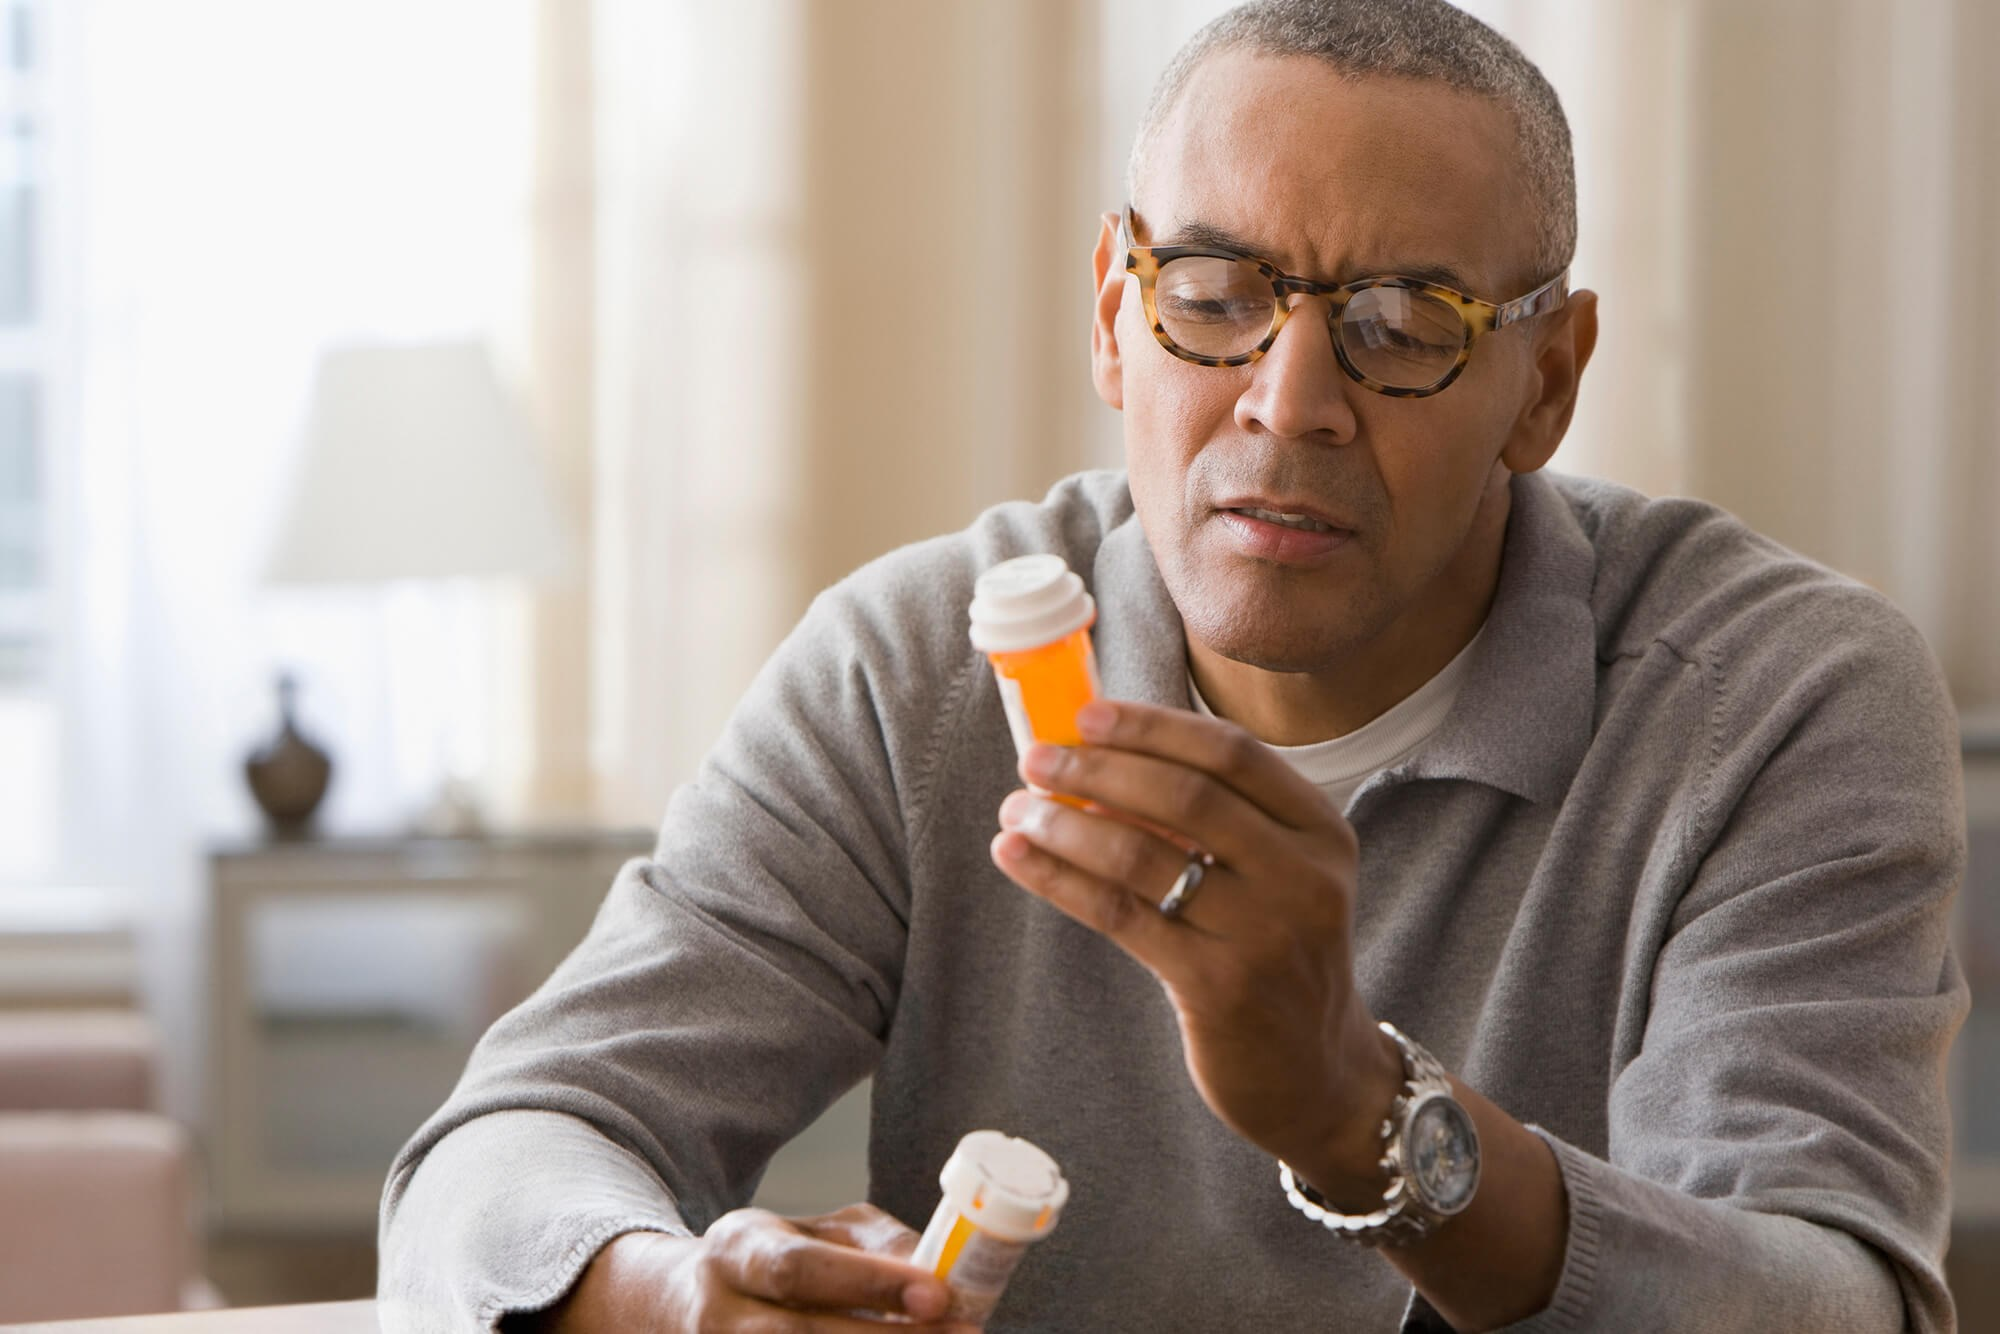 MM meds are taken according to complex schedules, which makes medication adherence a common problem.